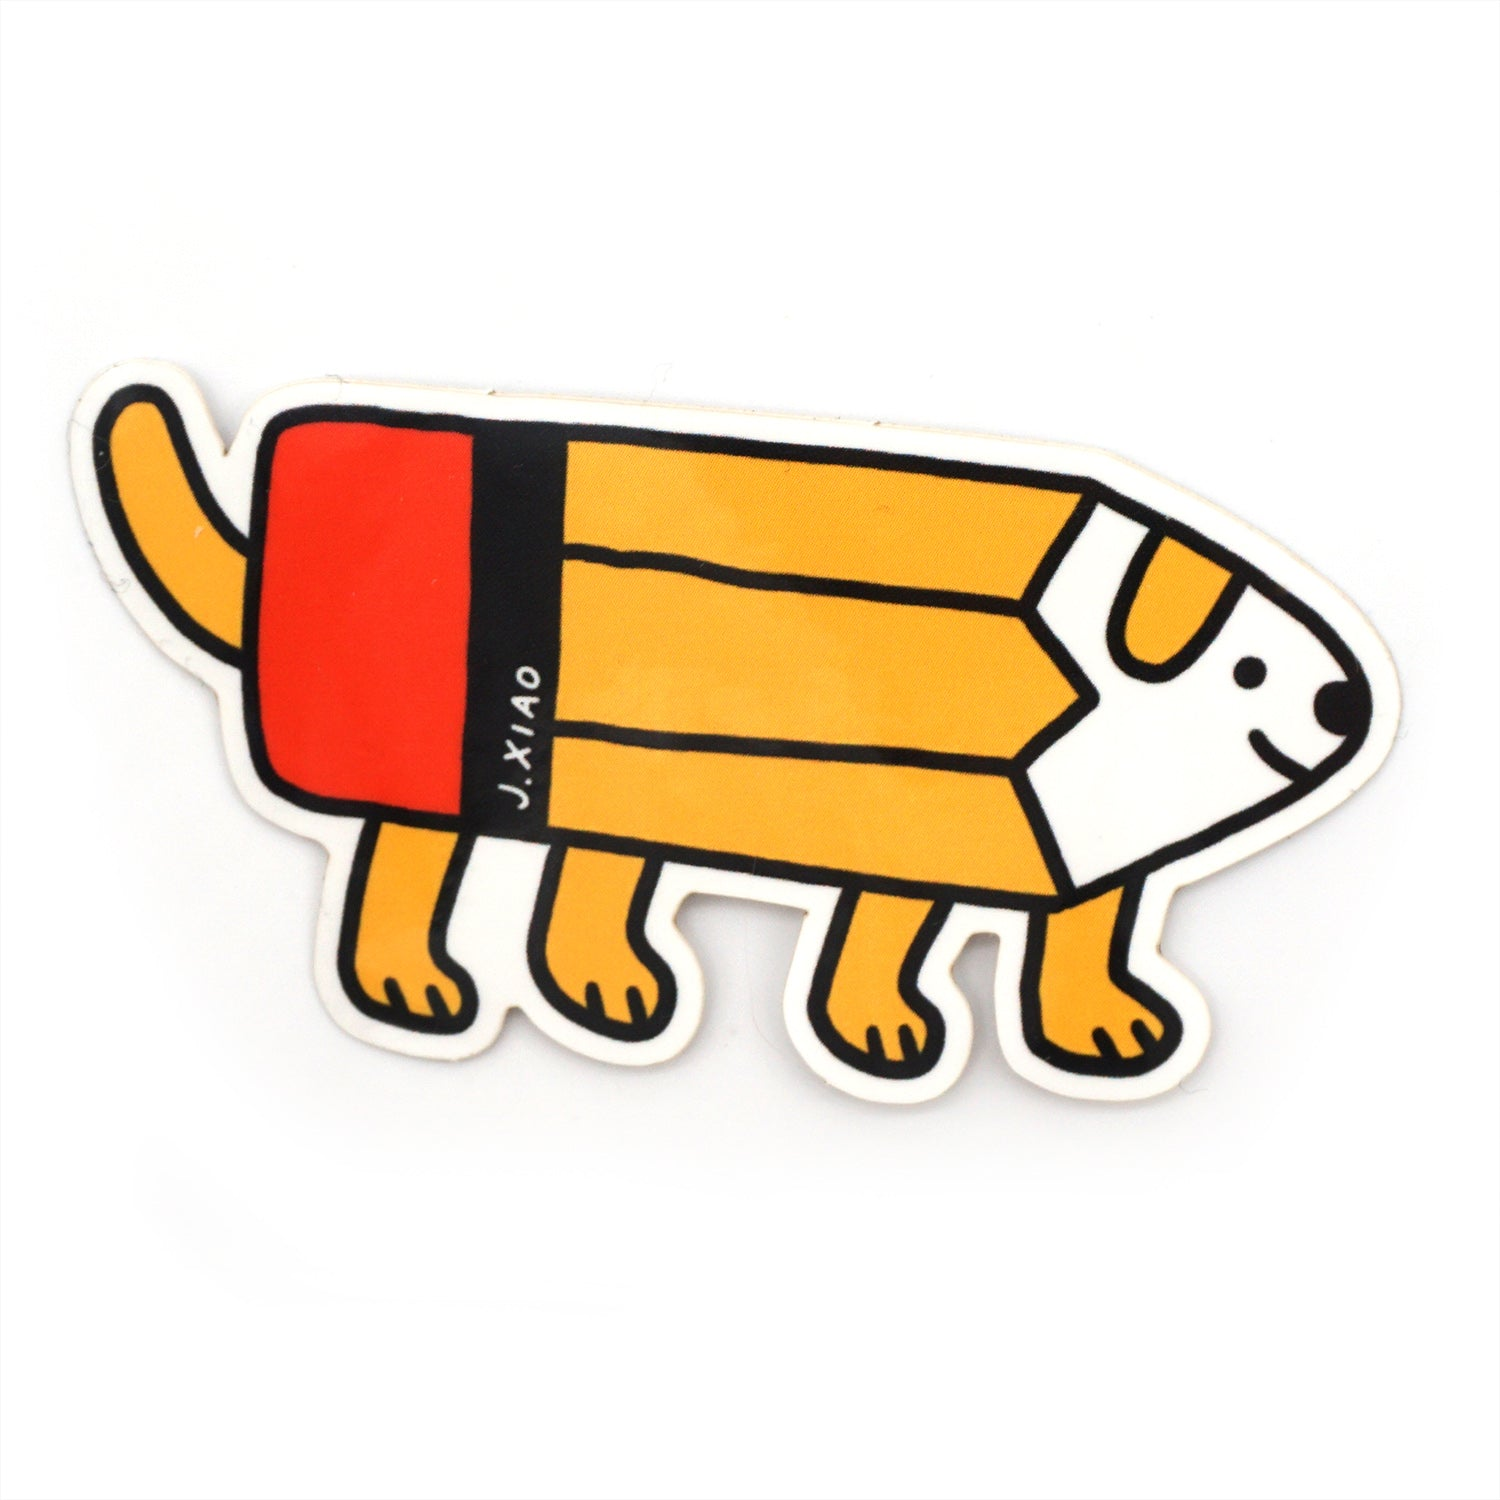 Pencil Dog Sticker